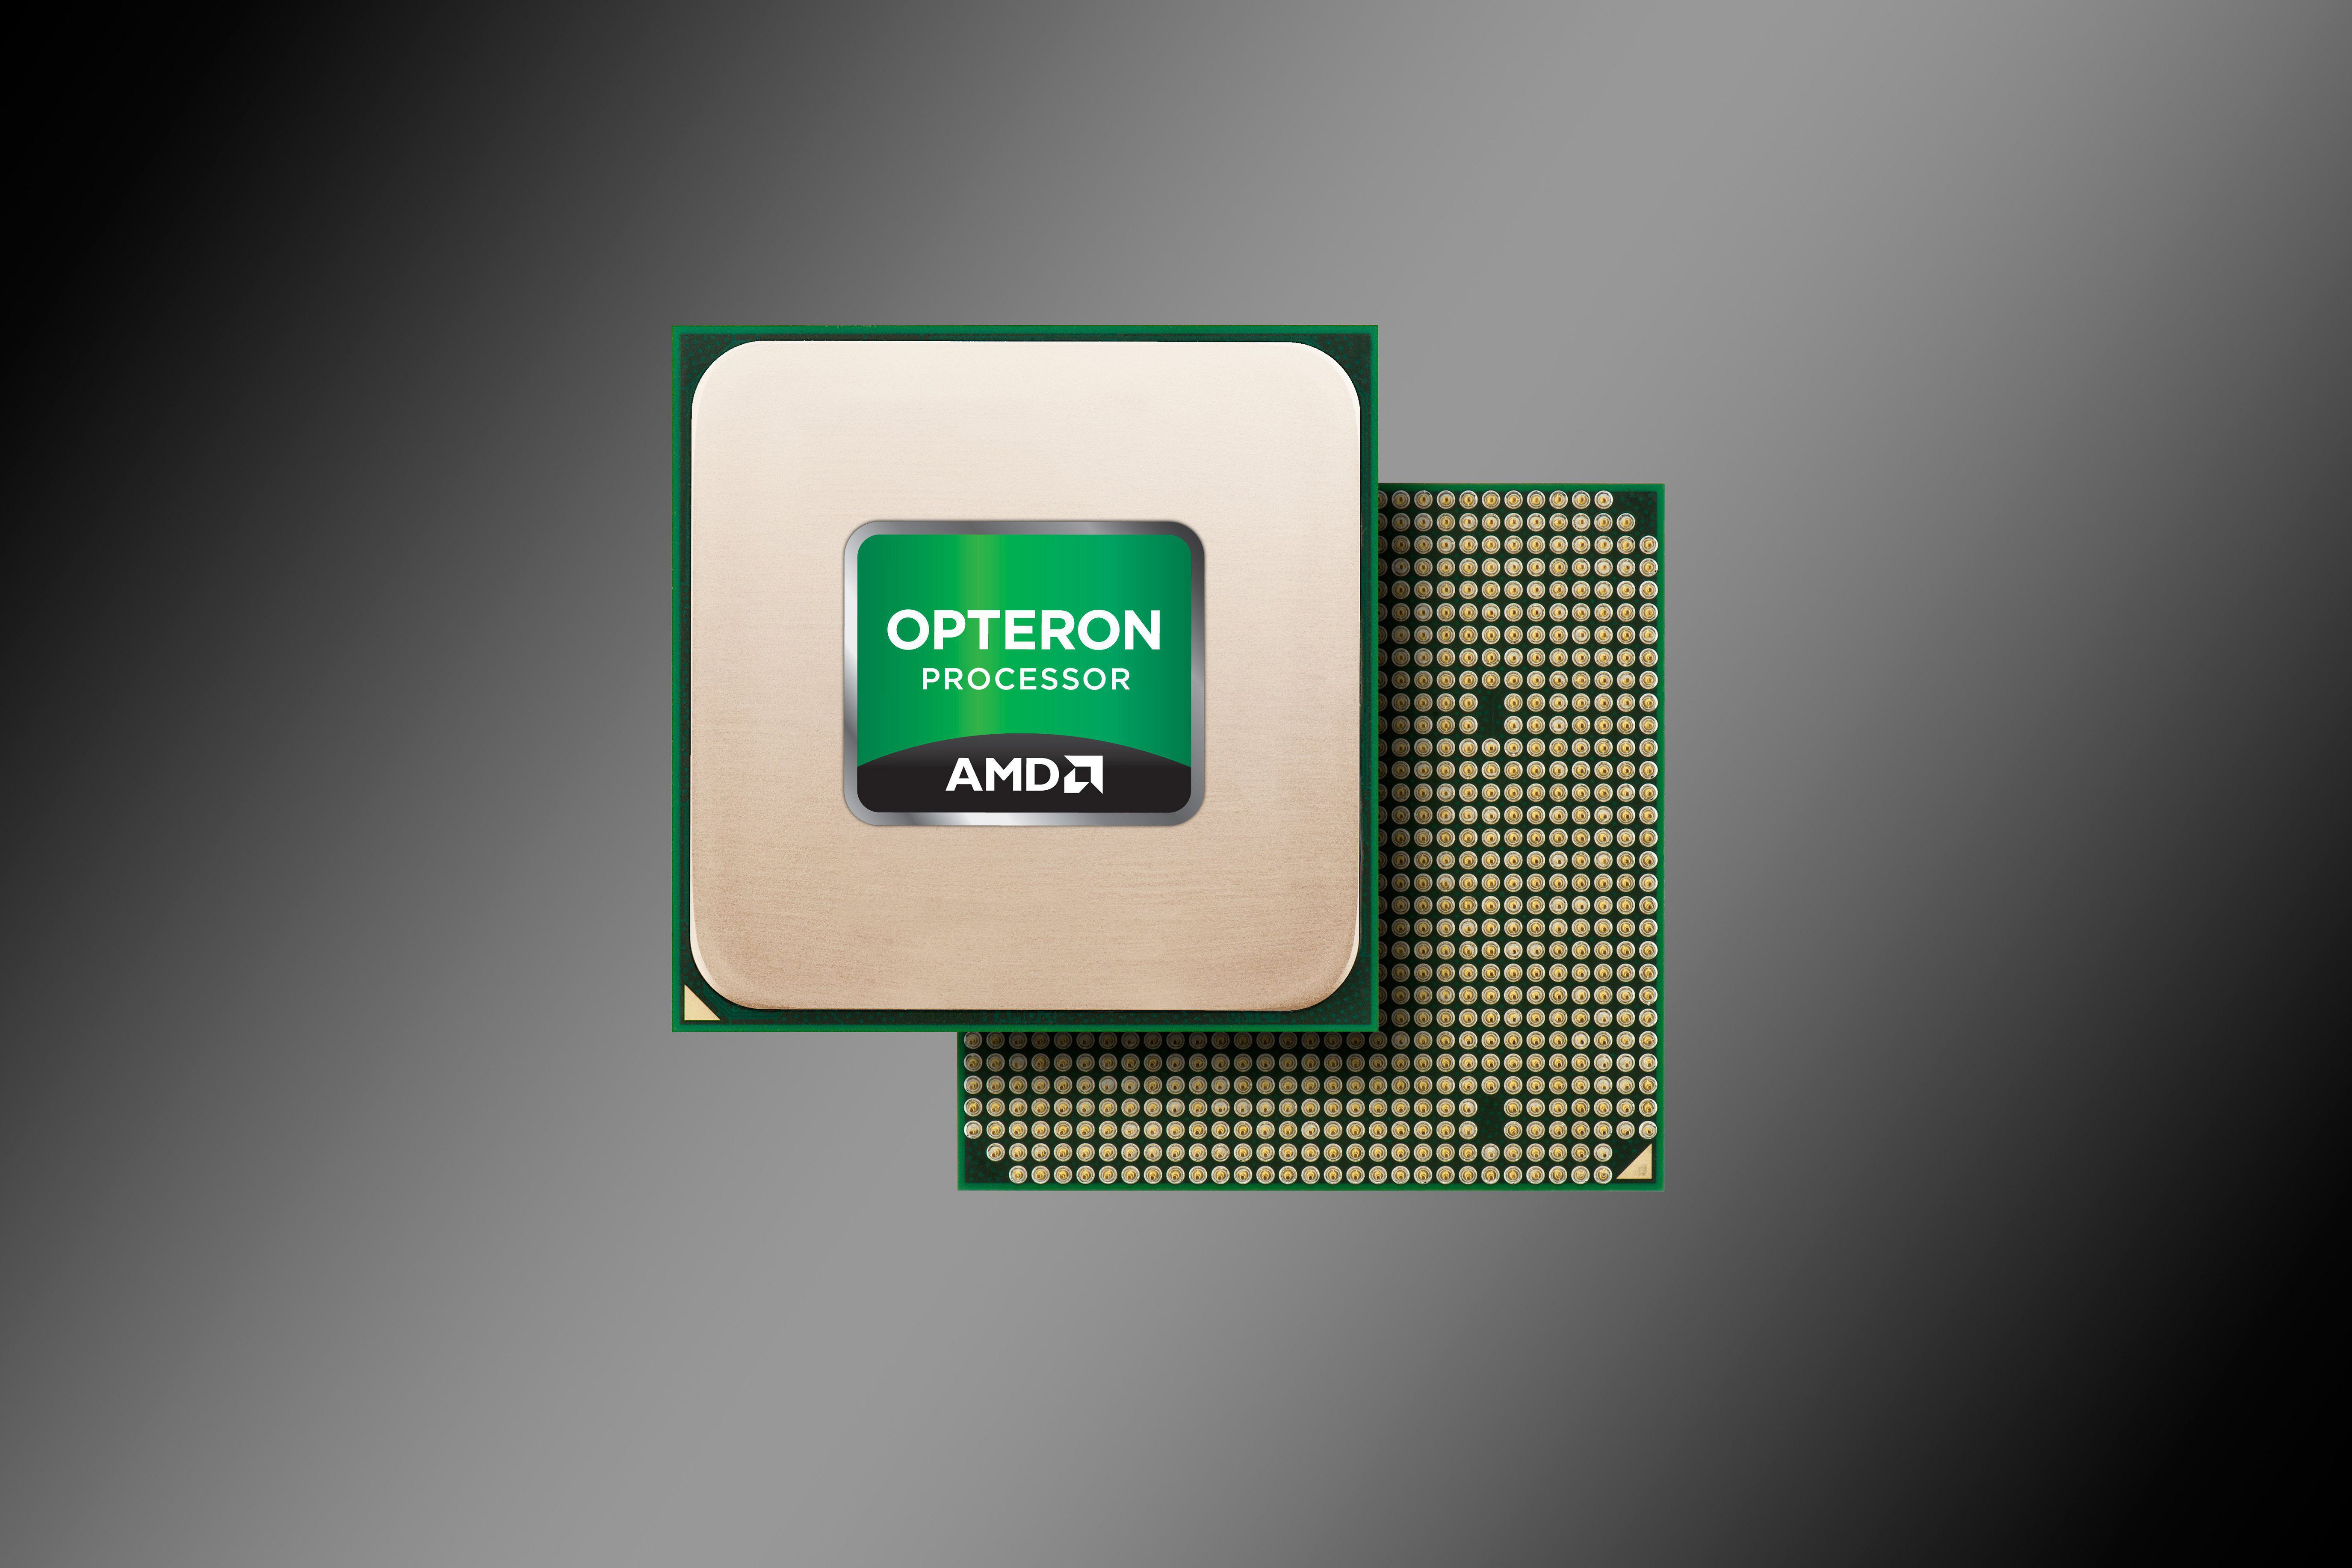 Amd HD Wallpaper